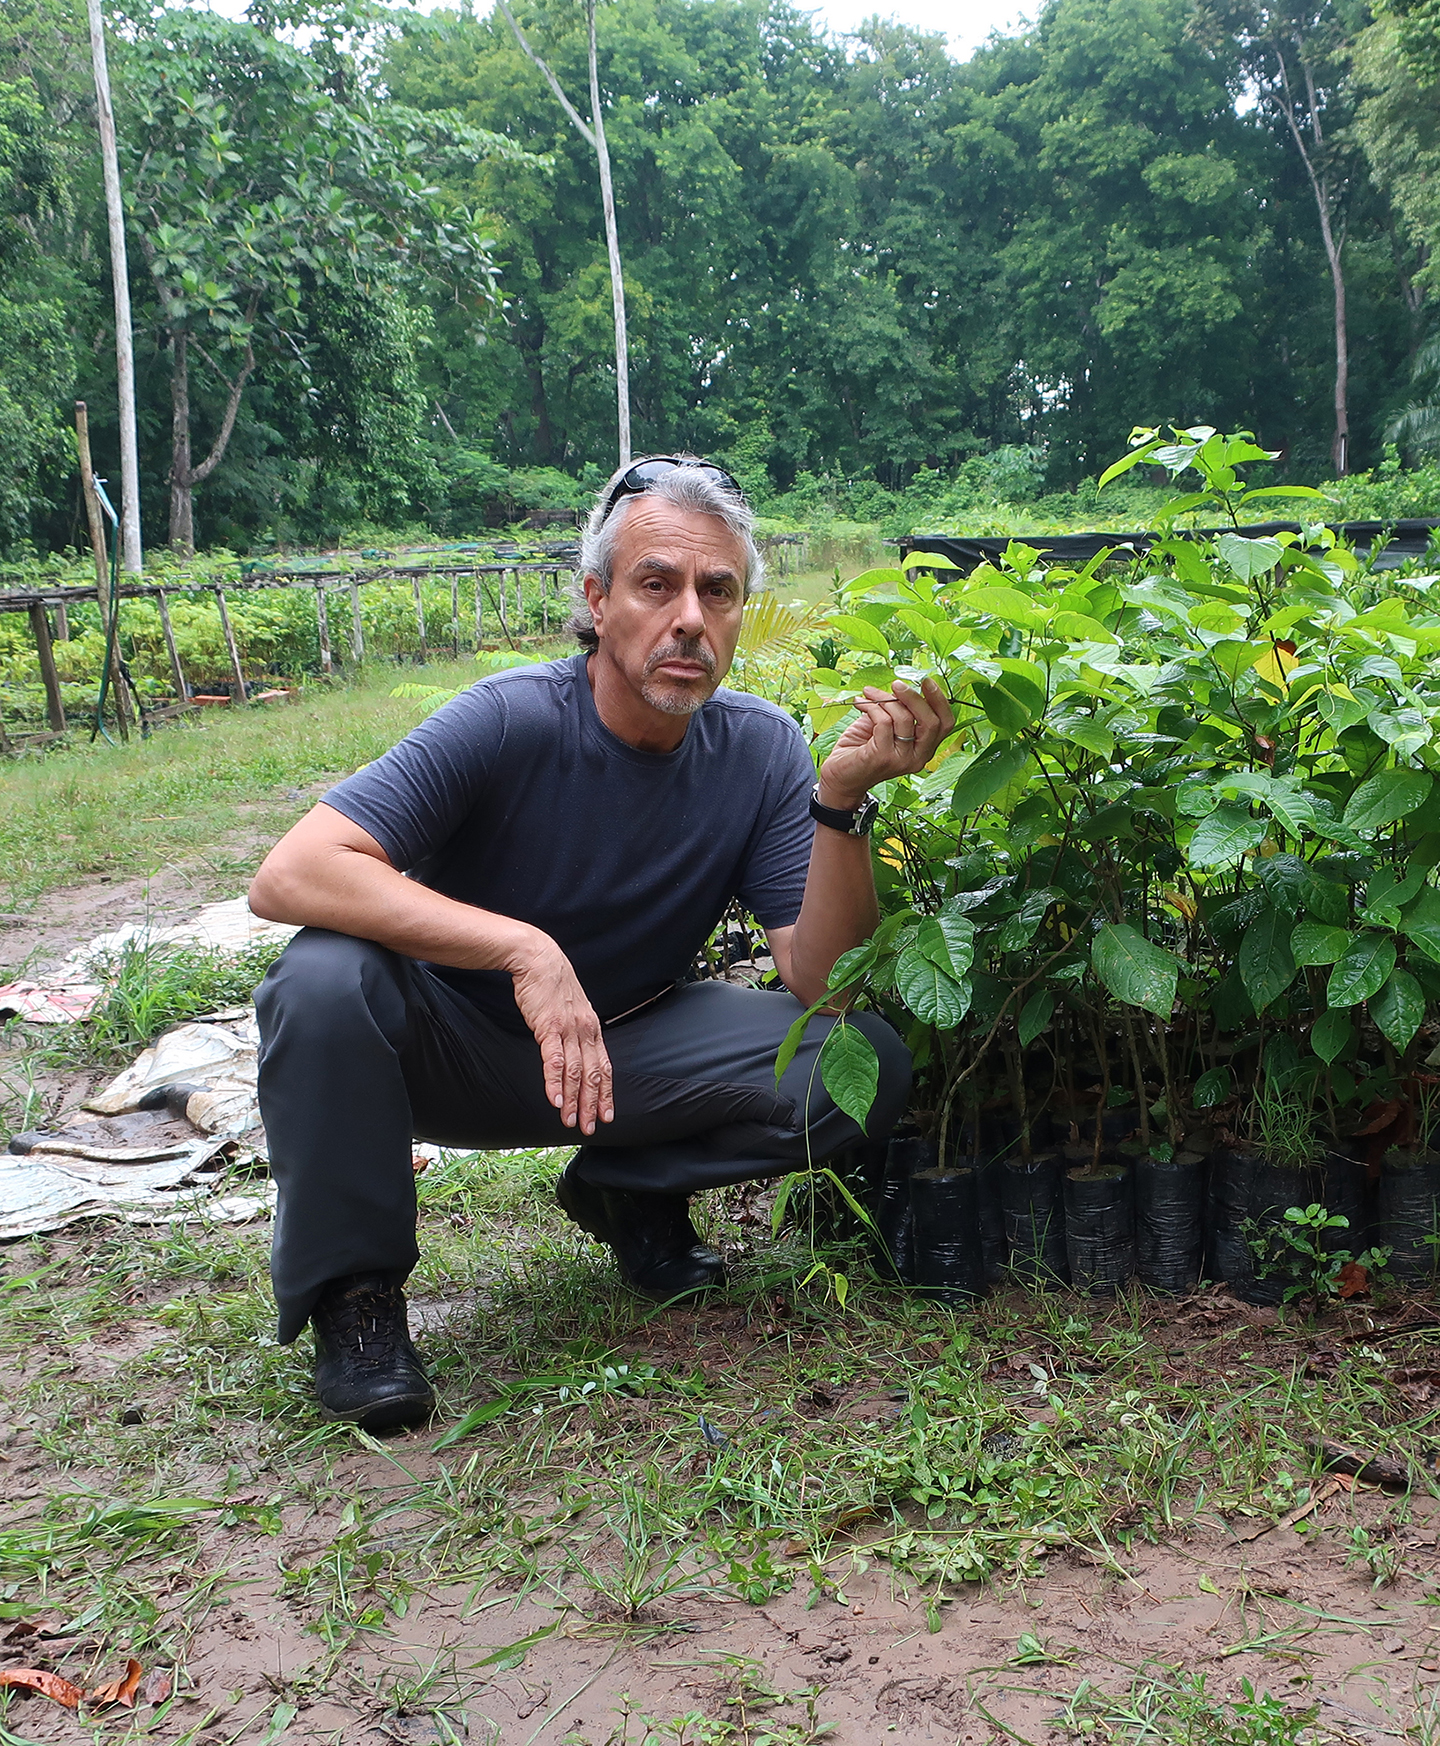 Amazon Ayahuasca Sustainability Study Conducted by Medicine Hunter